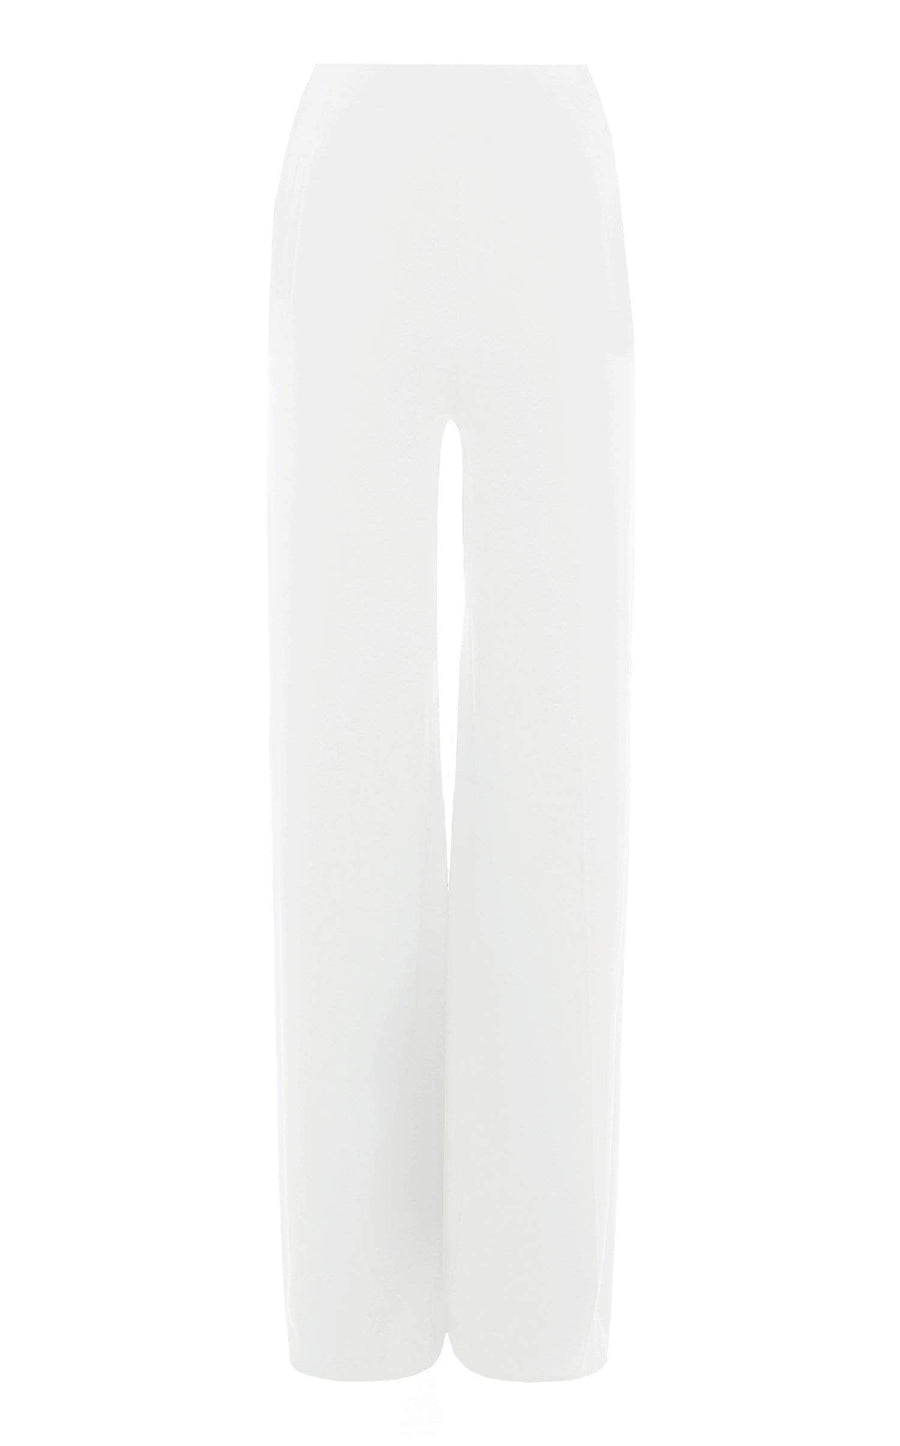 Axon Trouser In White from Roland Mouret